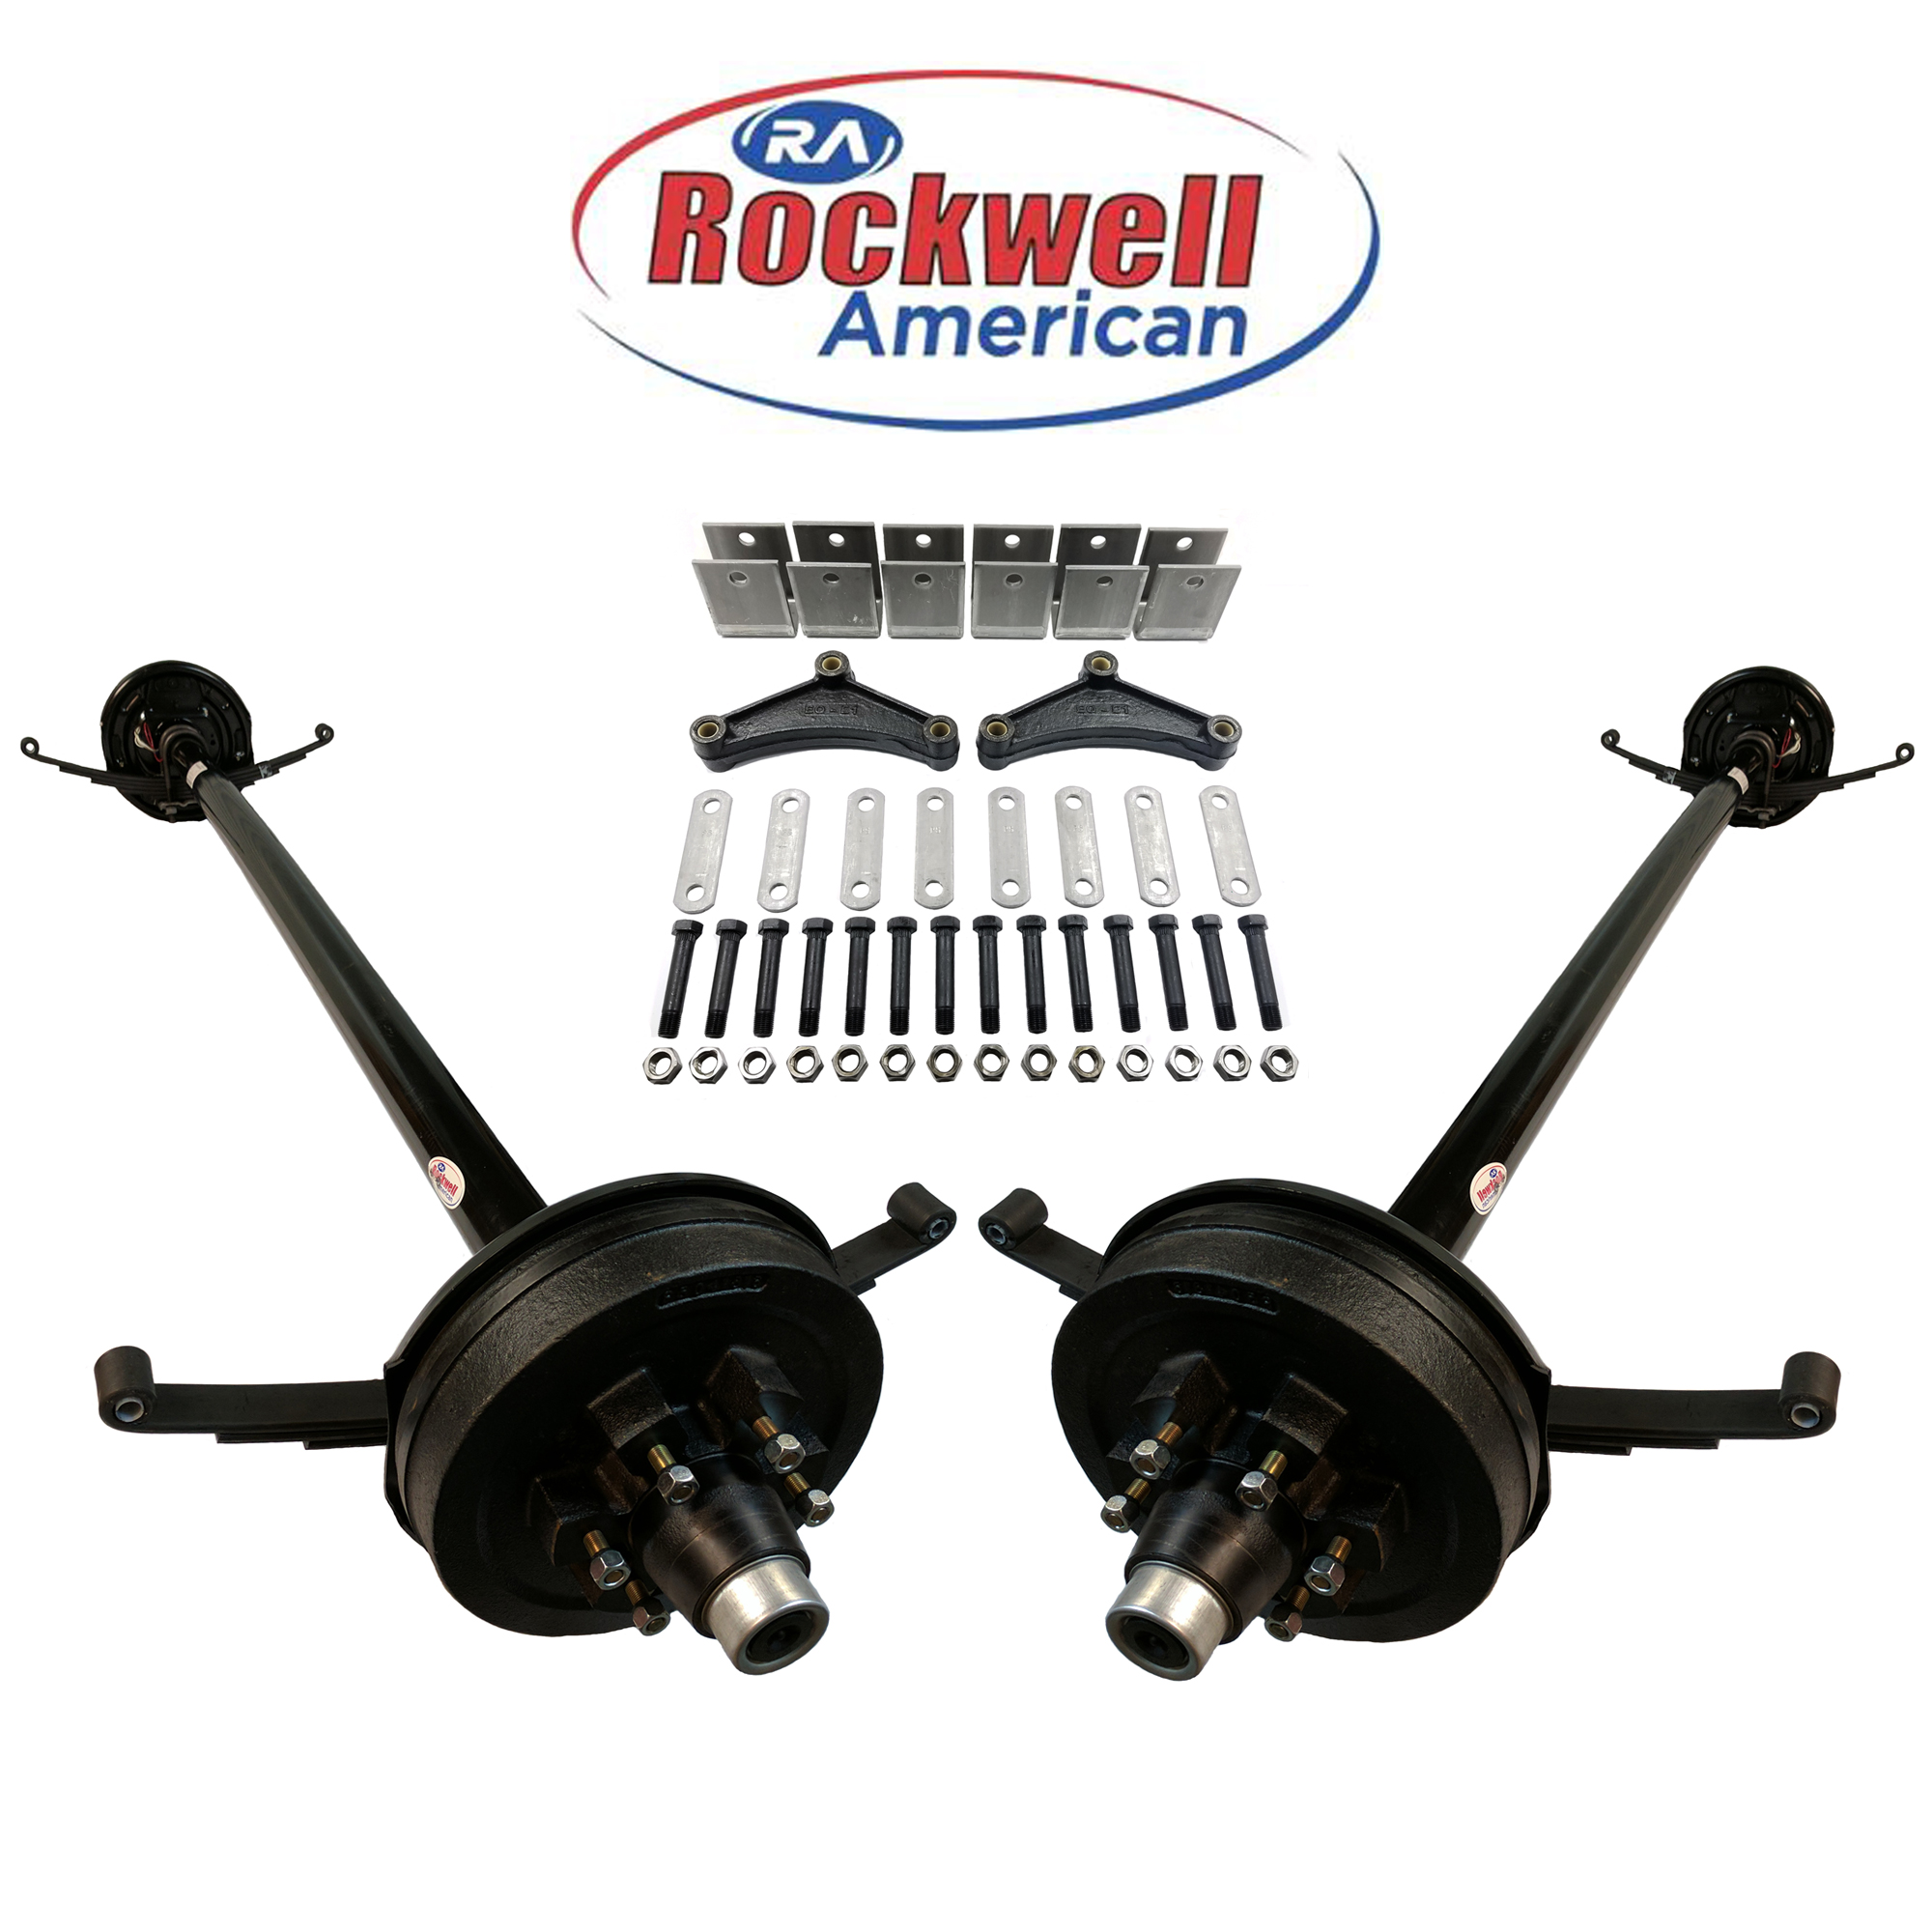 Tandem 5,200 lb Electric Trailer Brake Axles with Double Eye Springs & Ubolts - Rockwell American Posi-Lube Spindles - Powder Coated Axles - 6 Lug